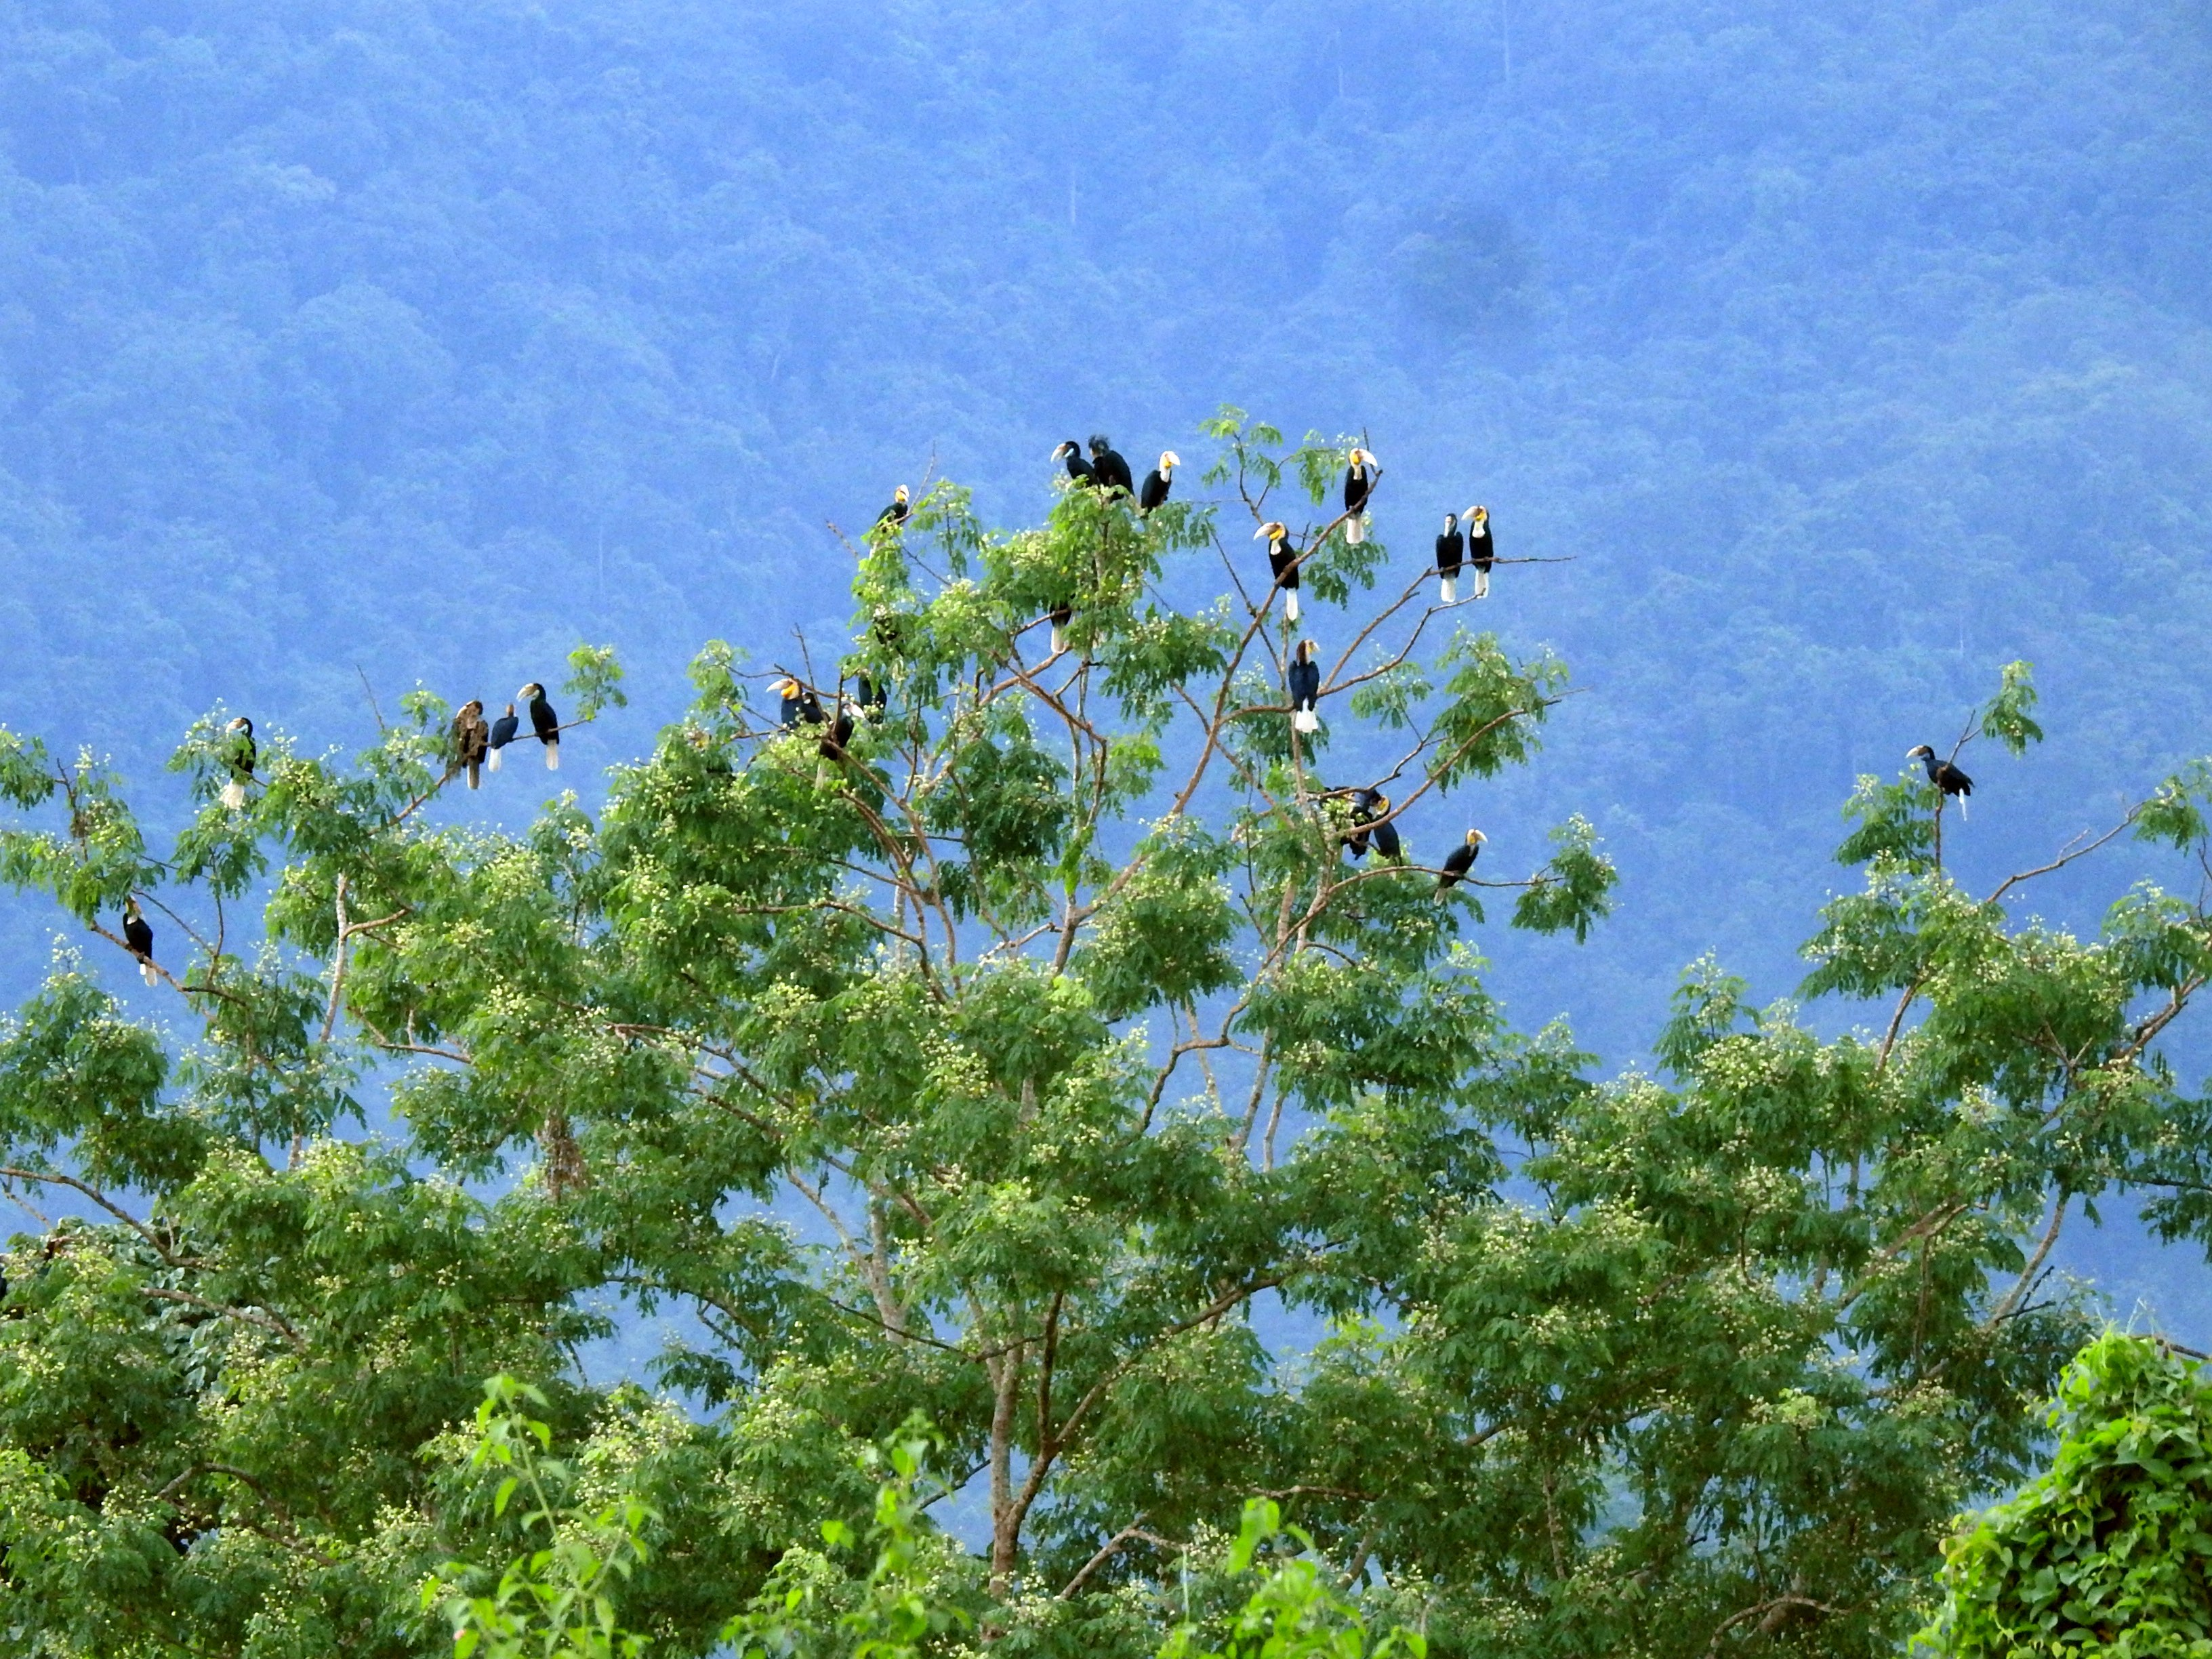 Wreathed hornbills are communal roosters, settling in large numbers to roost together for the night. Photo: Aparajita Datta